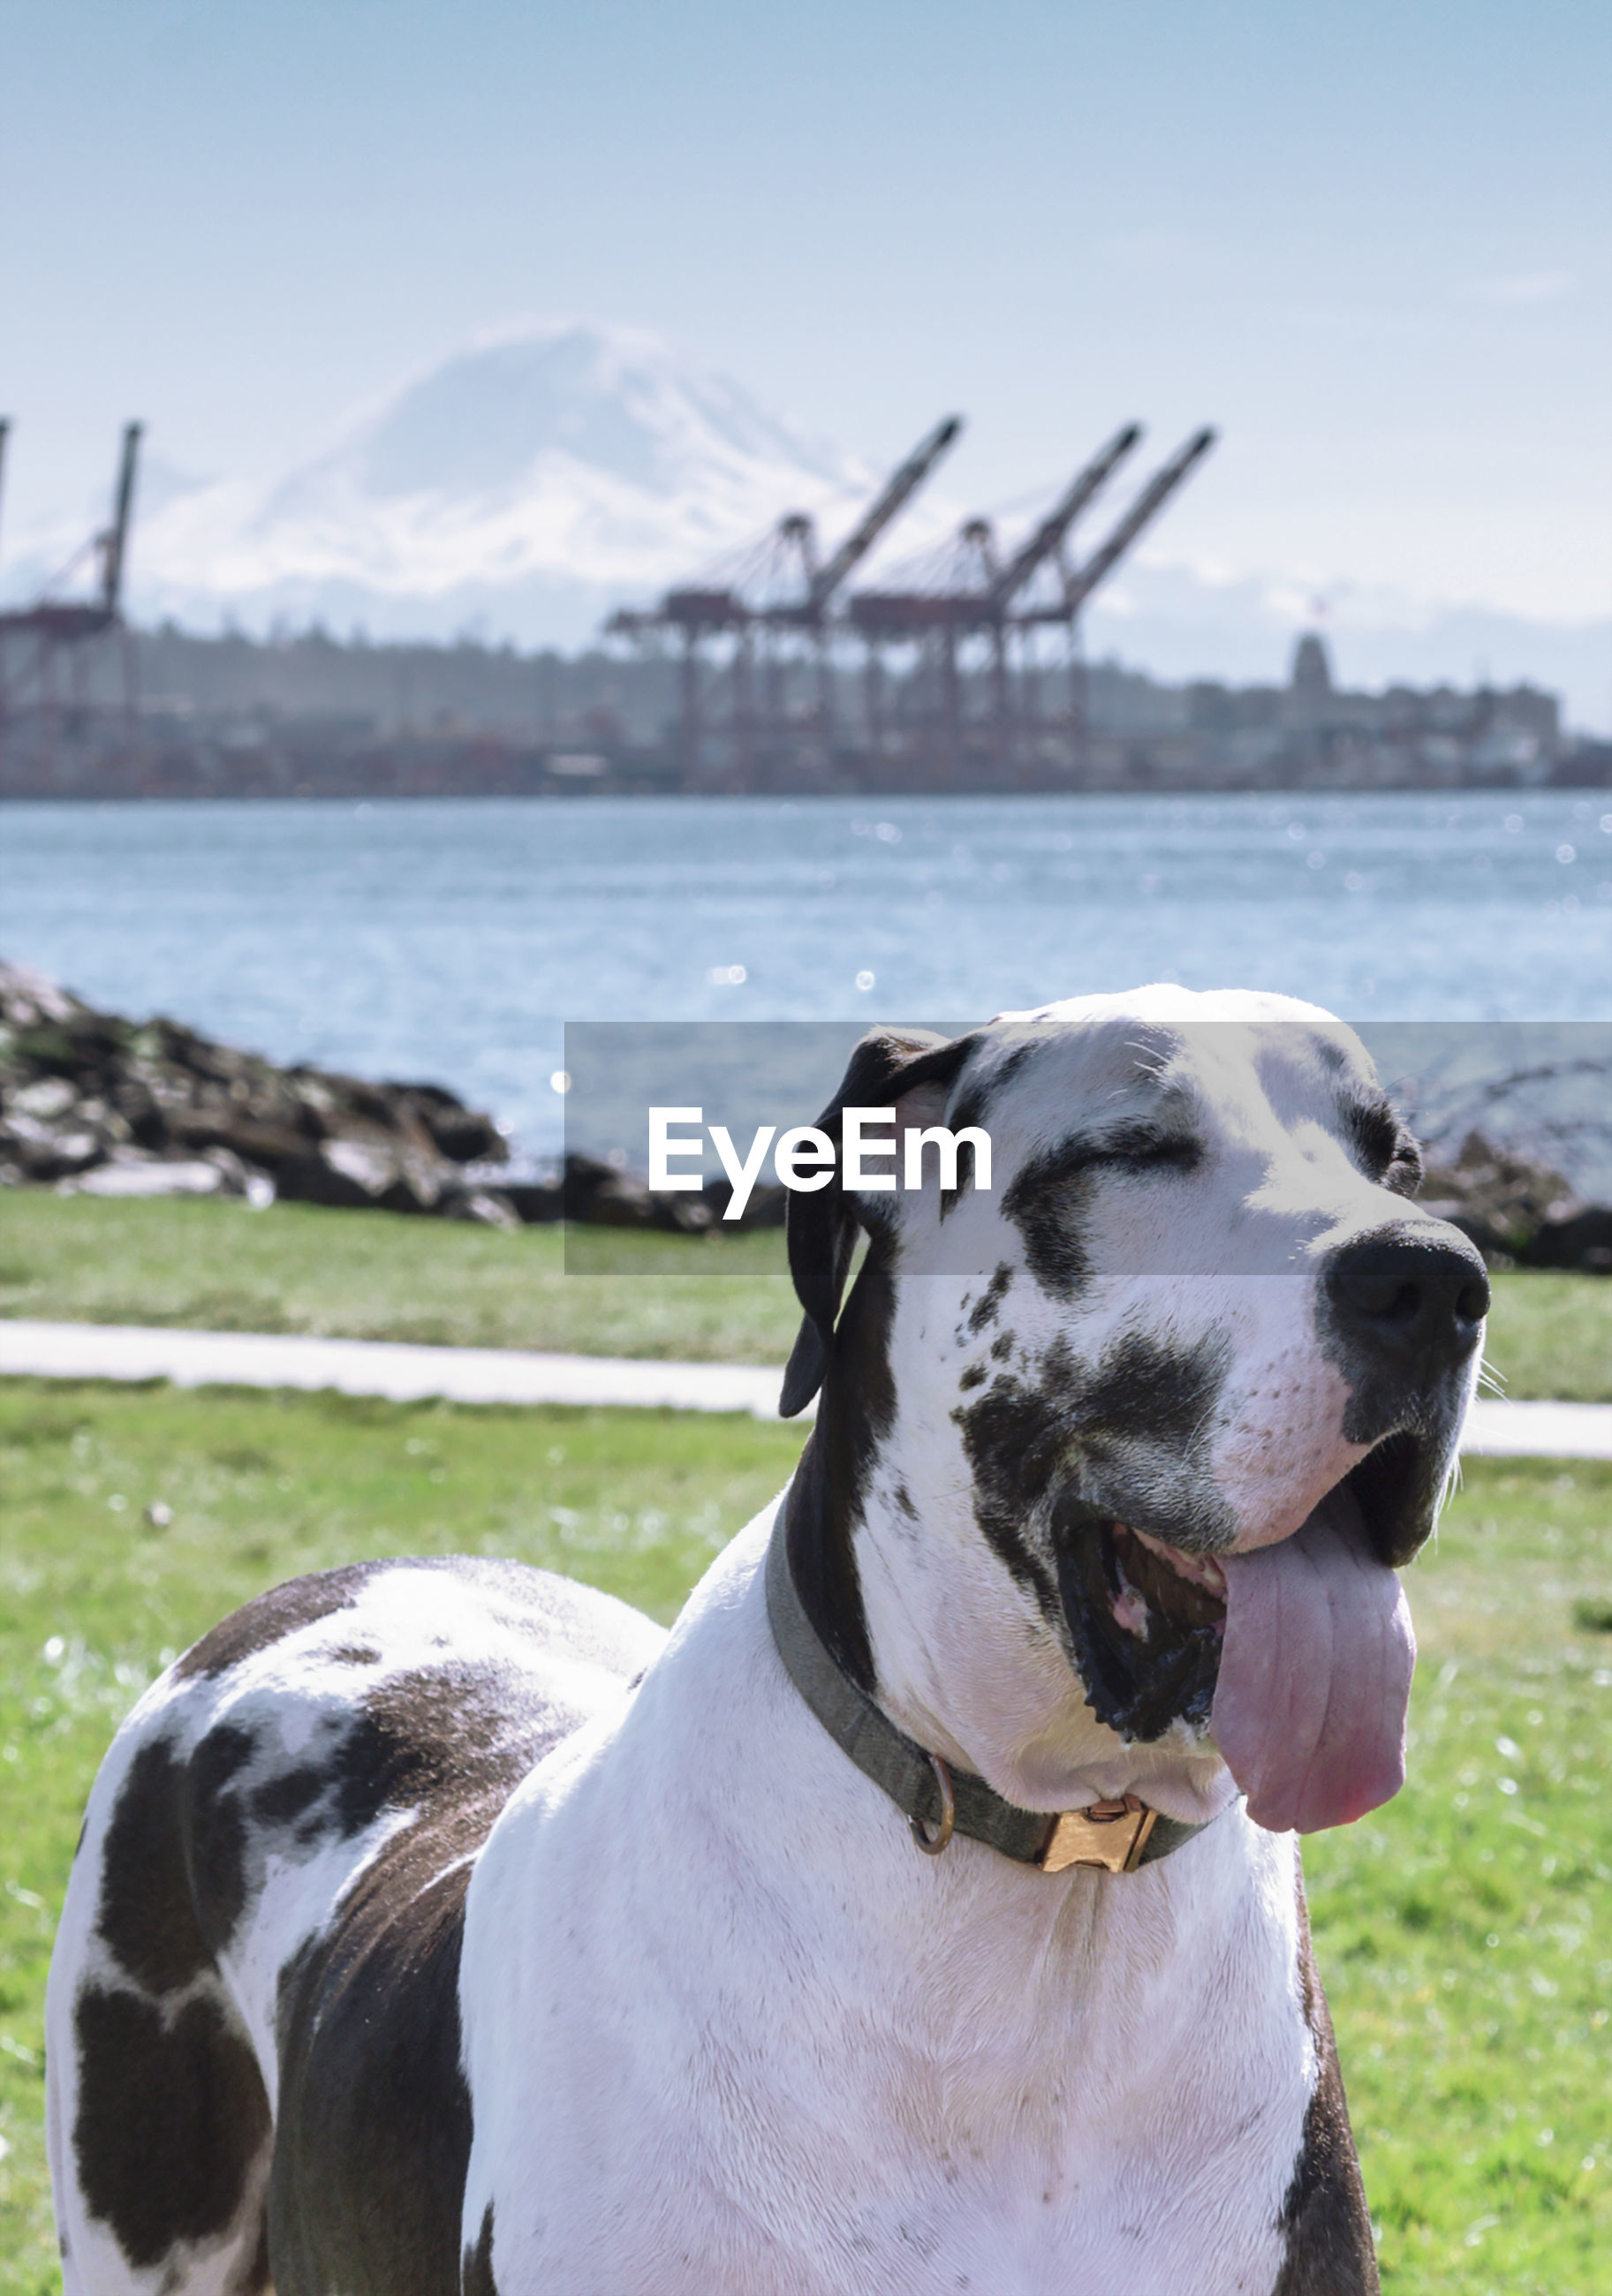 great dane dog panting spring day on the seattle waterfront with shipping cranes mount rainier in